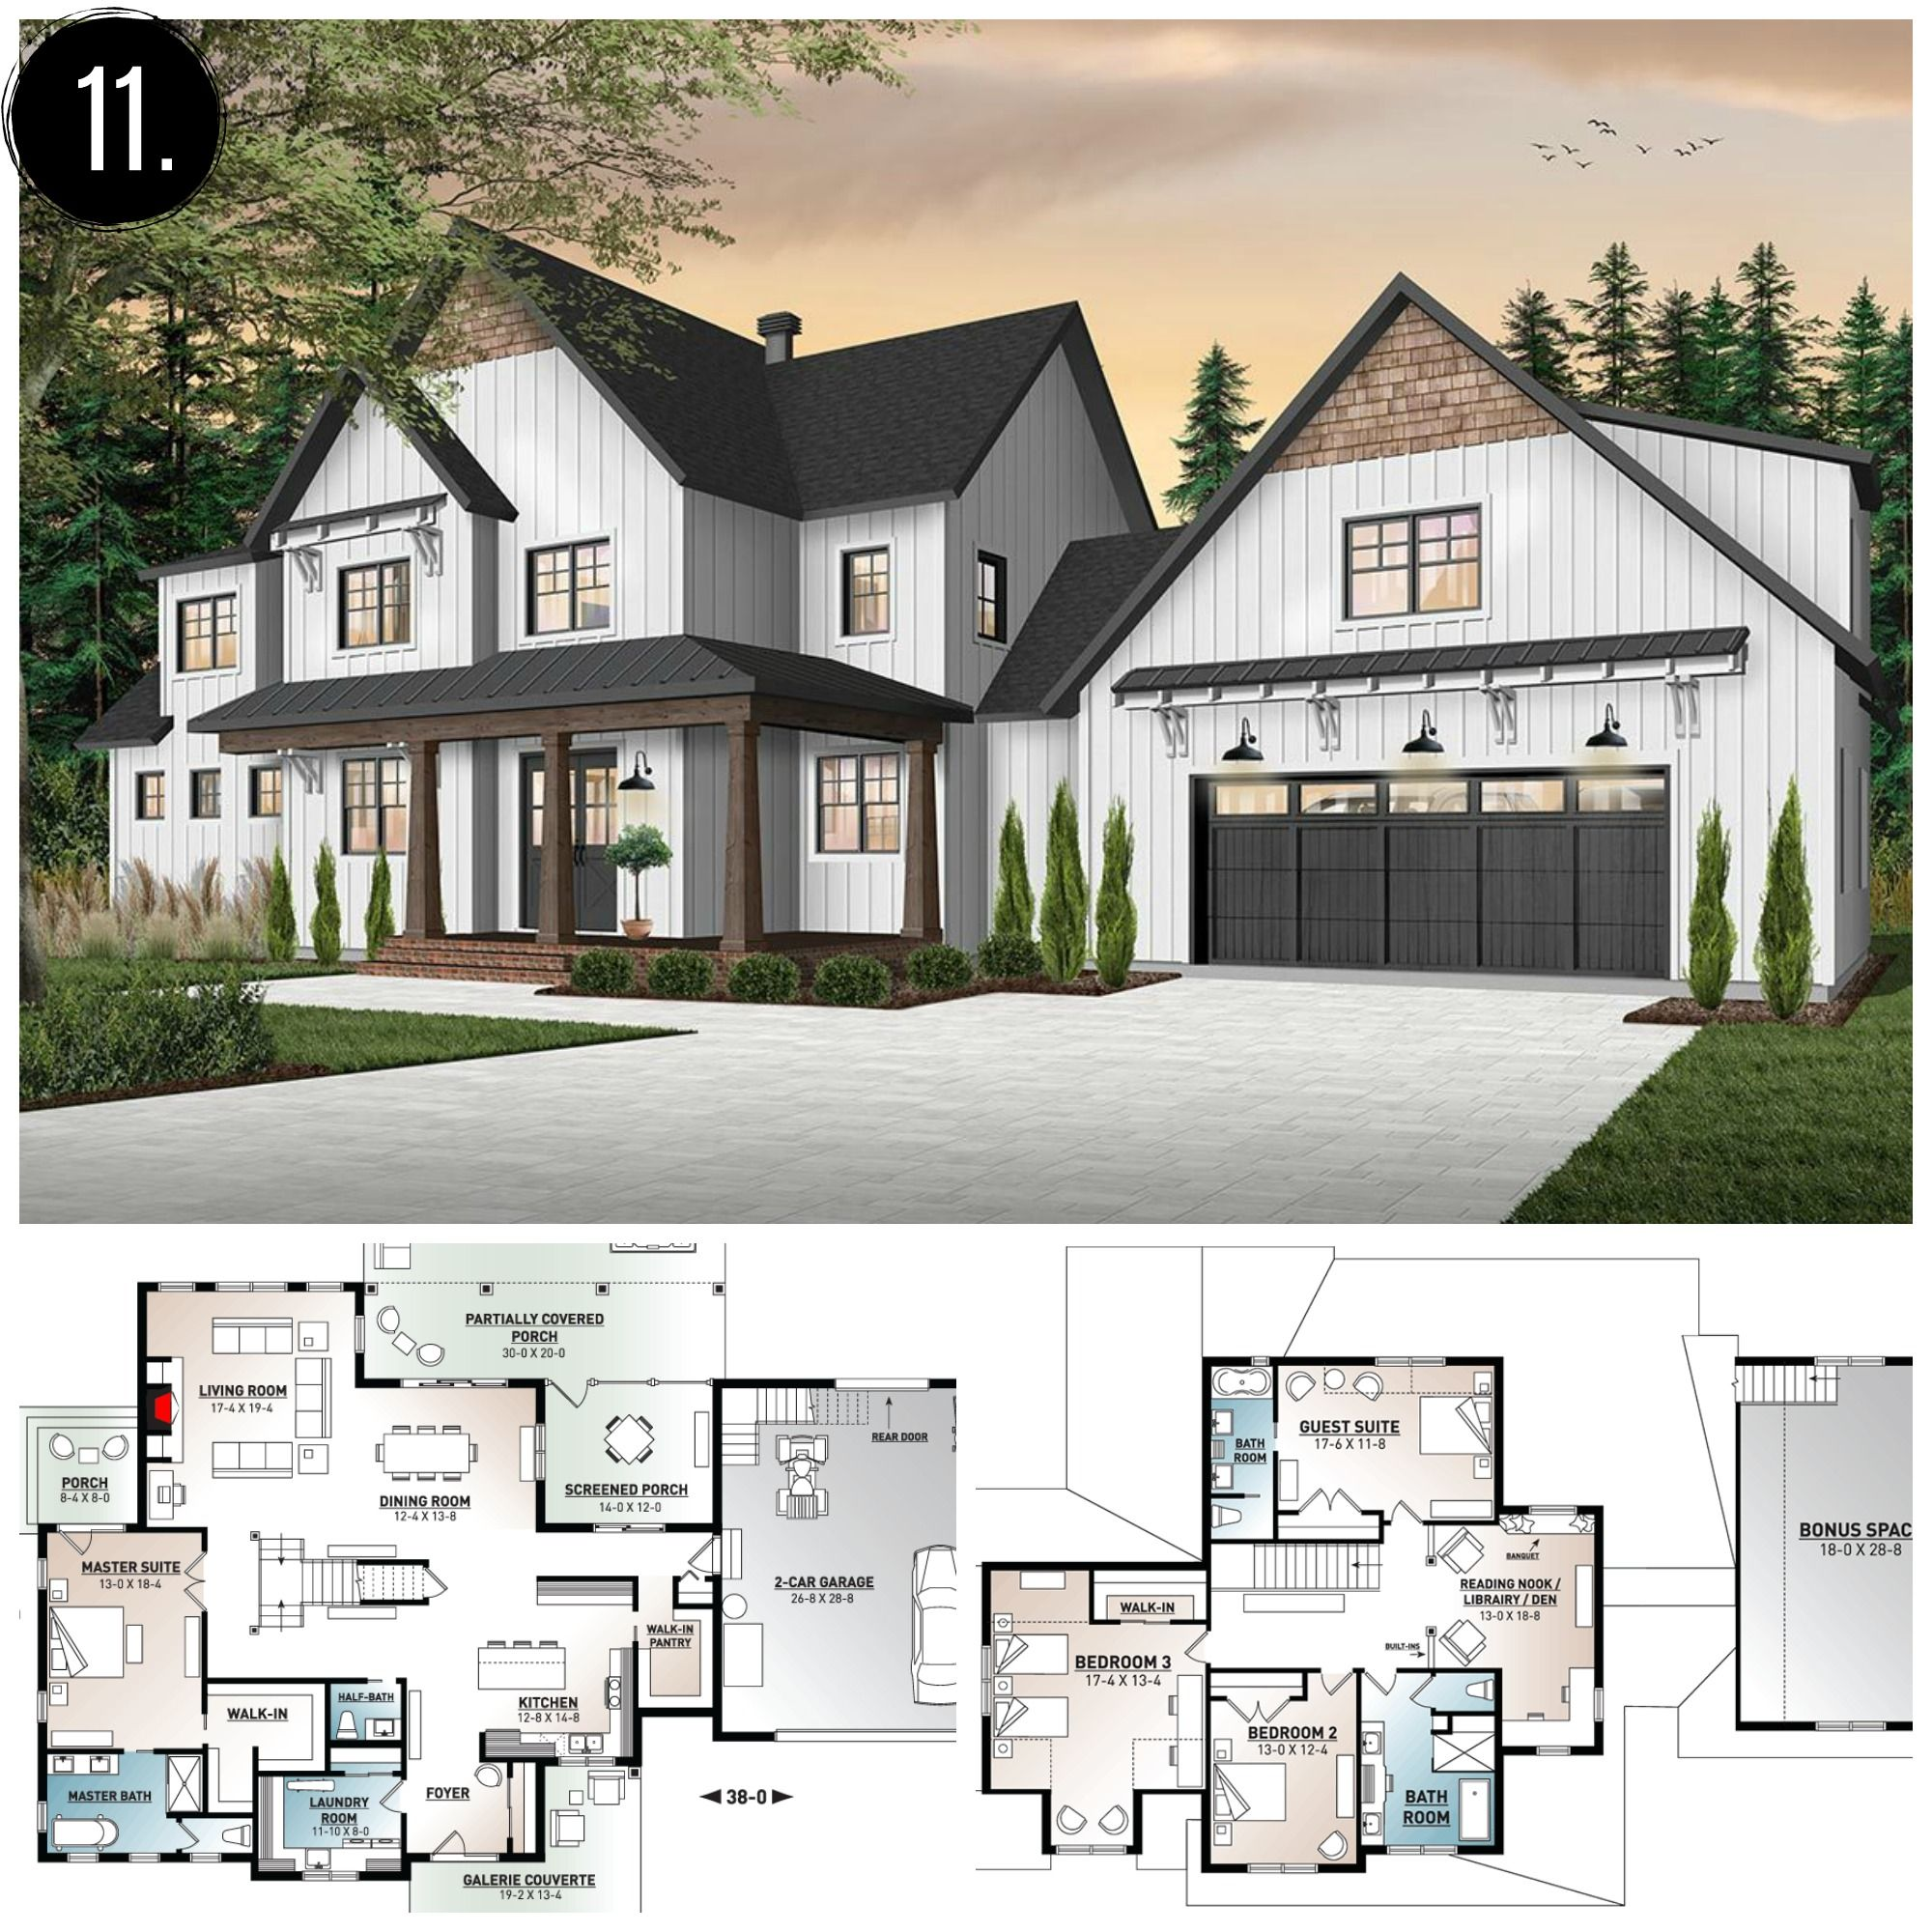 10 Amazing Modern Farmhouse Floor Plans Rooms For Rent Blog Modern Farmhouse Floorplan Farmhouse Floor Plans Modern Floor Plans